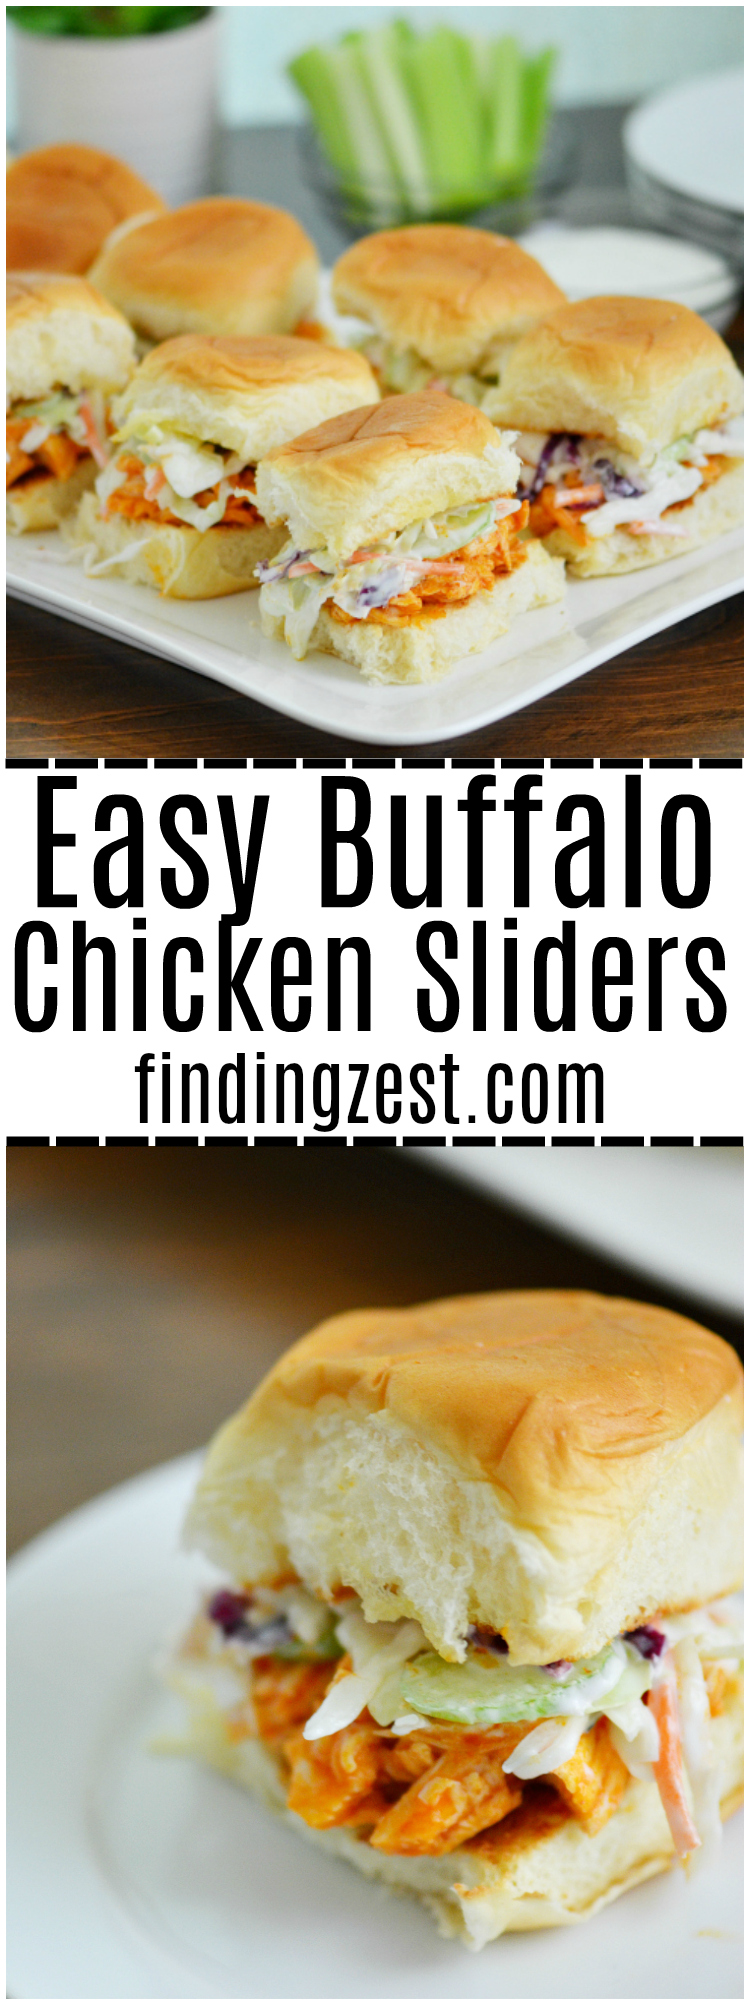 recipe: easy buffalo chicken sliders [31]